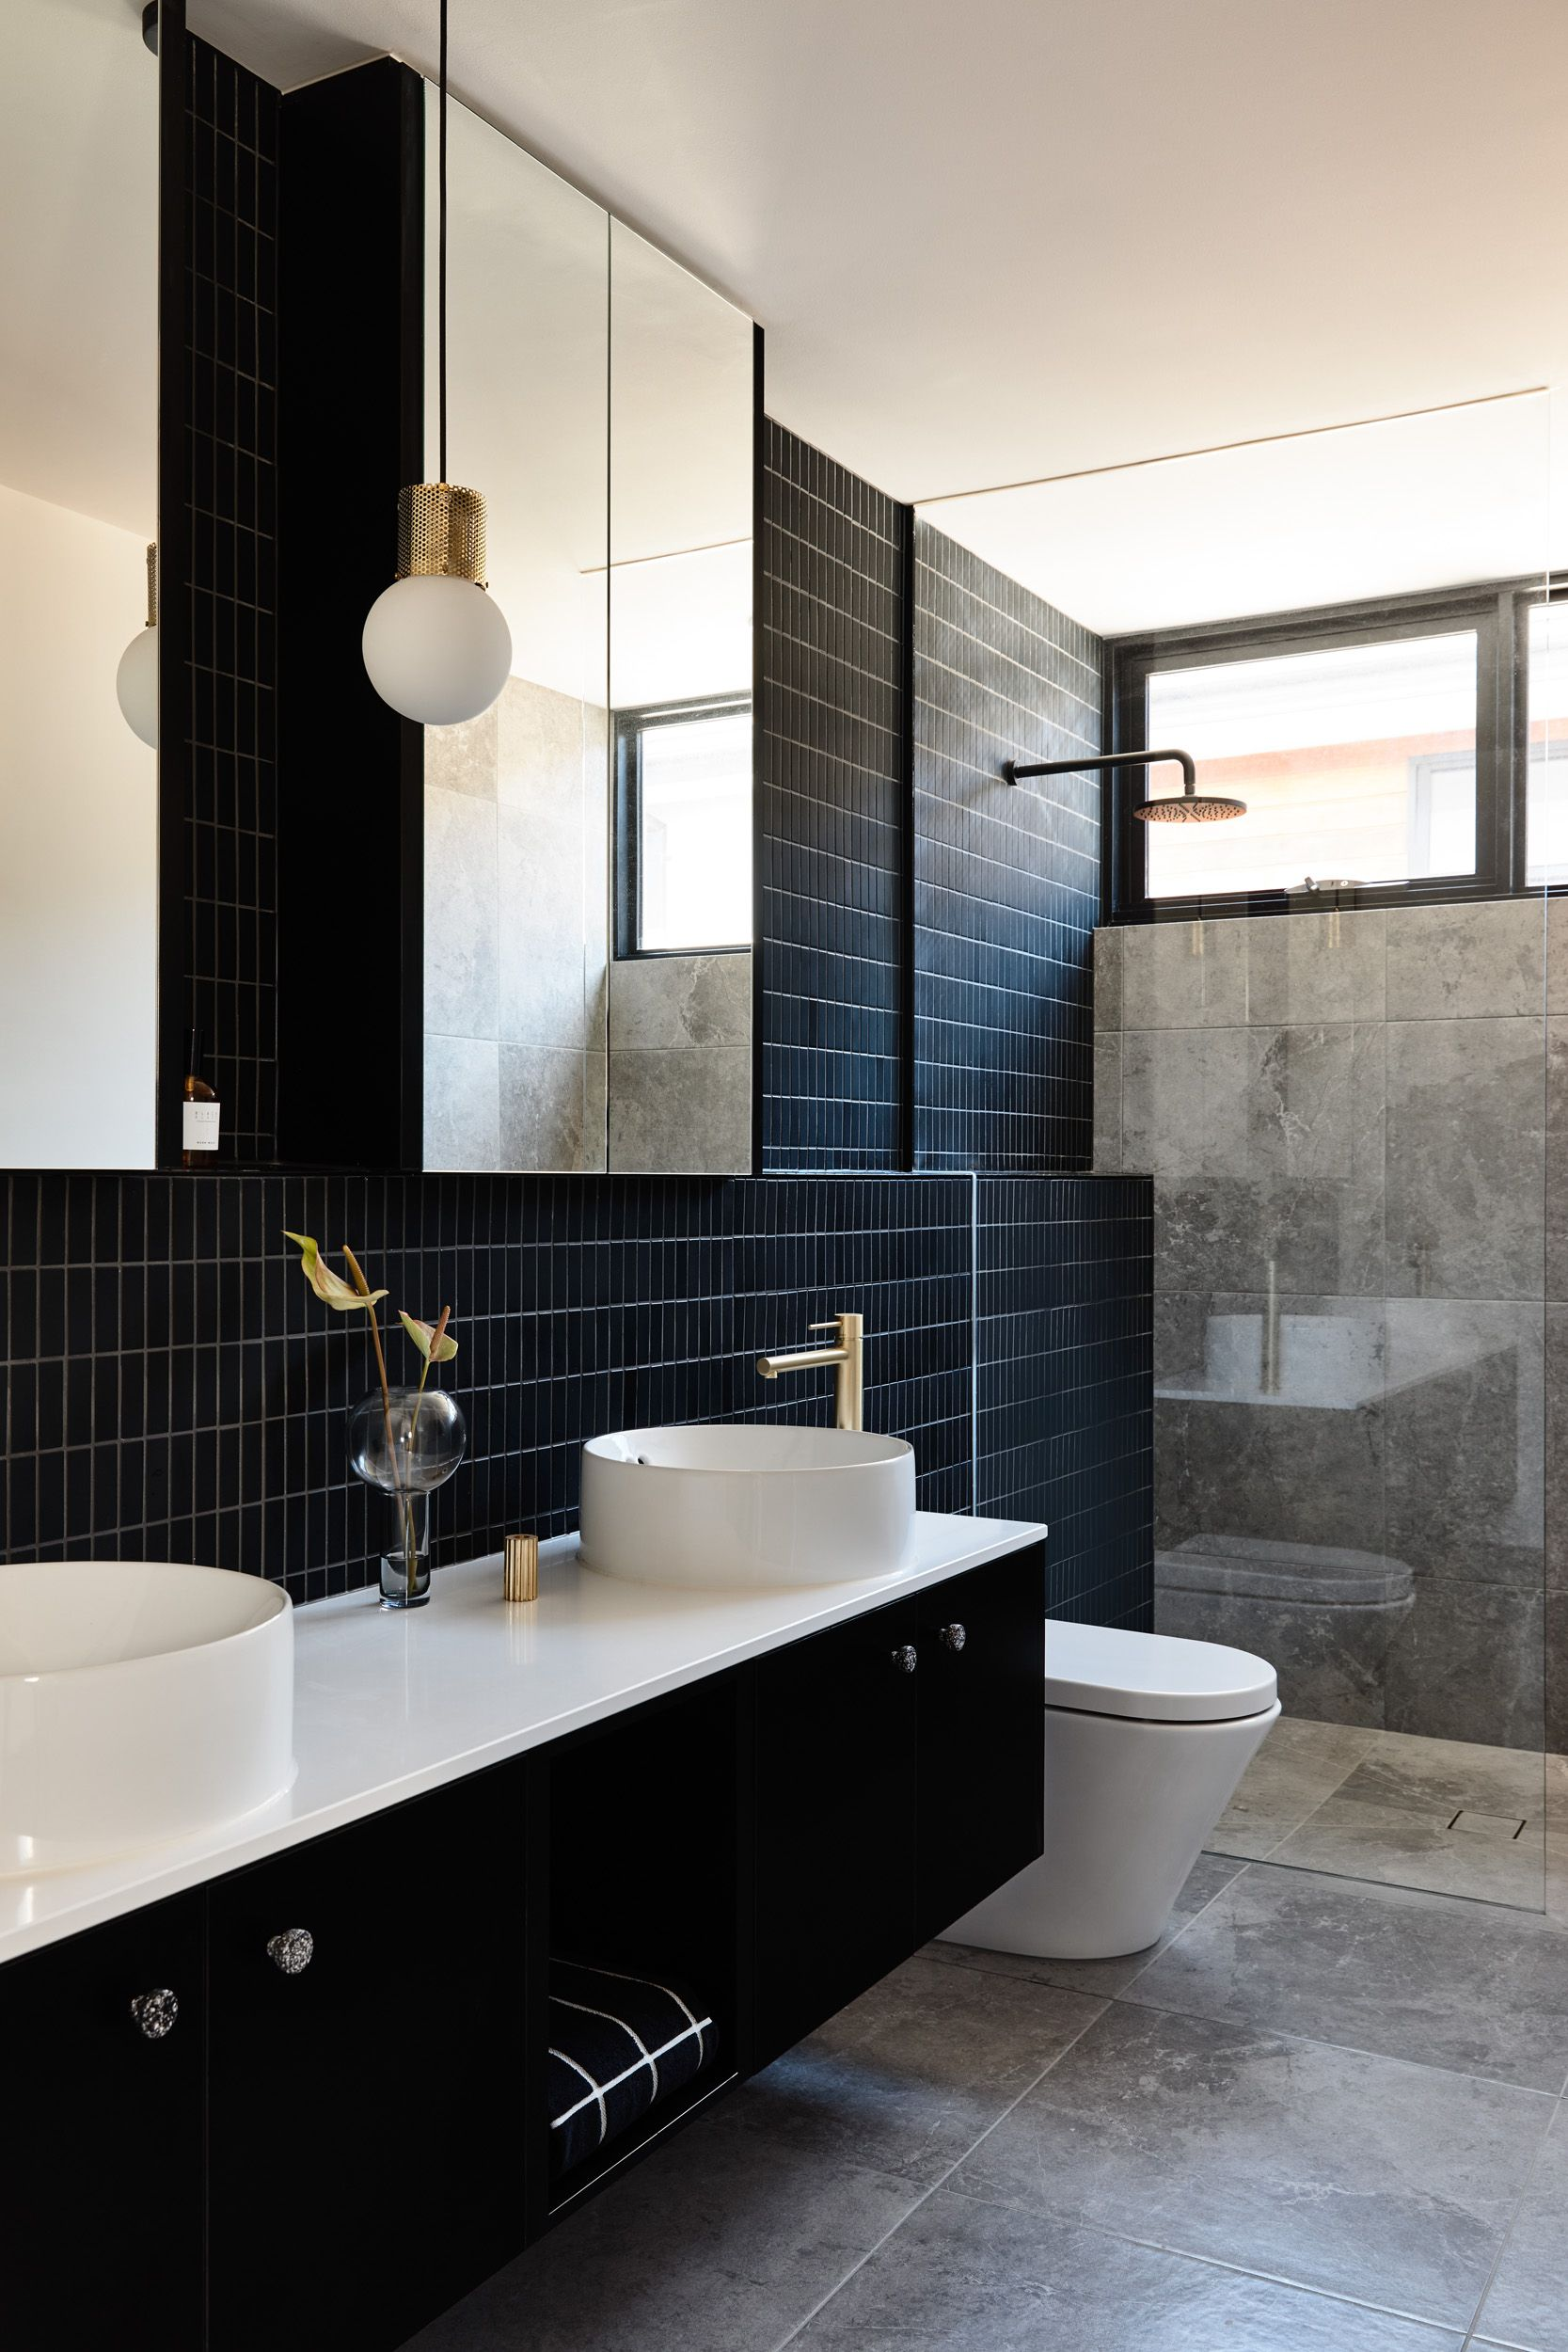 Caulfield North House By Inform 8211 Project Feature 8211 The Local Project In 2020 Bathroom Interior Design Bathroom Design Inspiration Bathroom Design